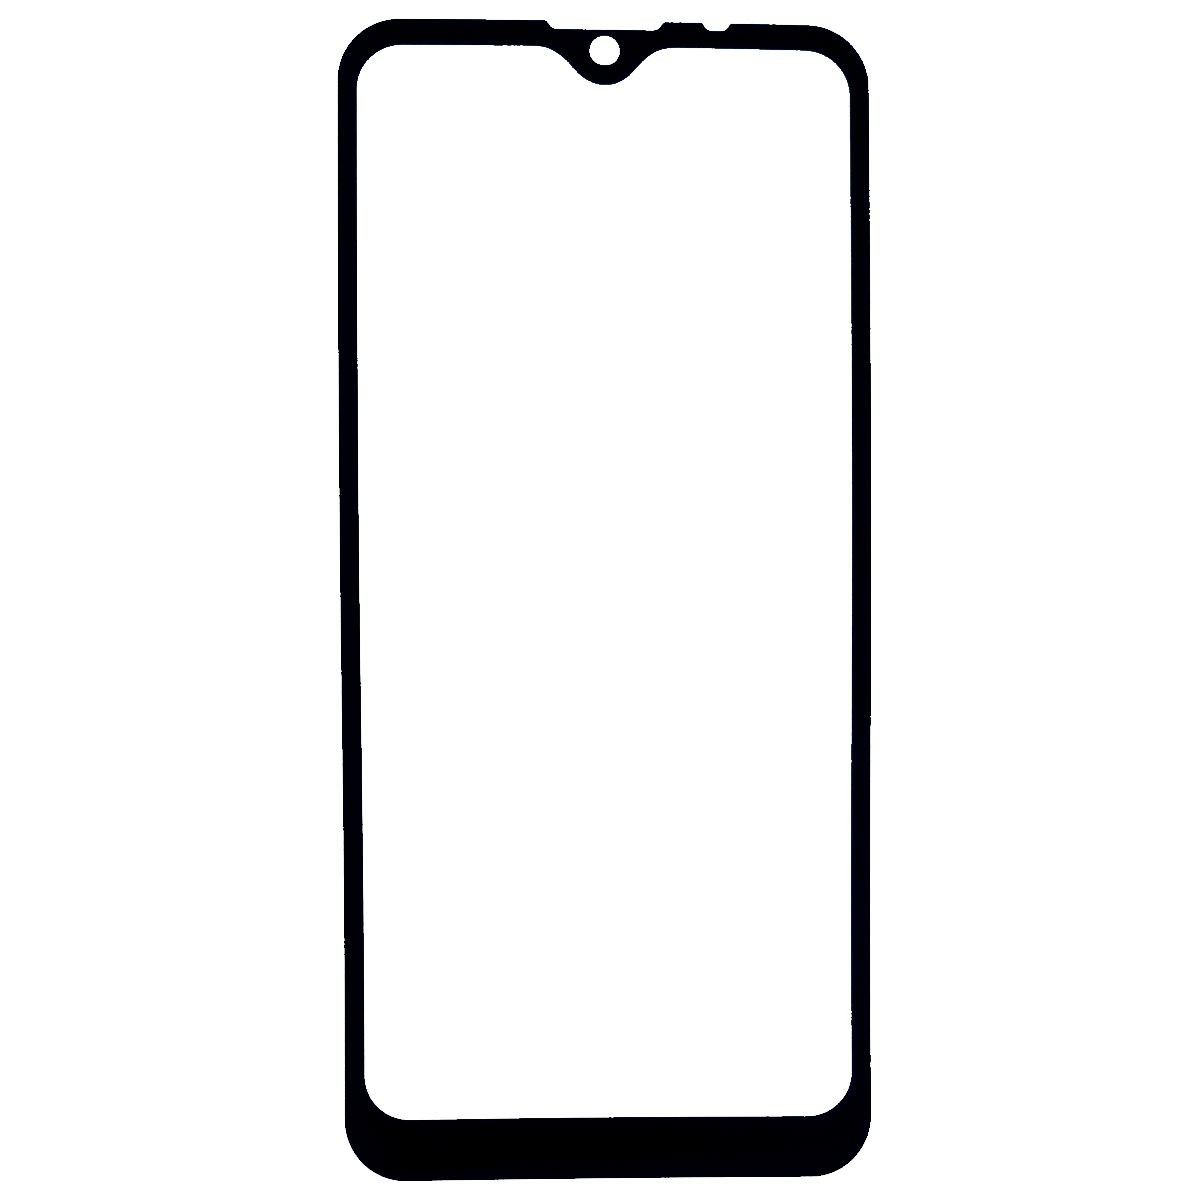 Buying a glass screen protector for your Gigaset GS110